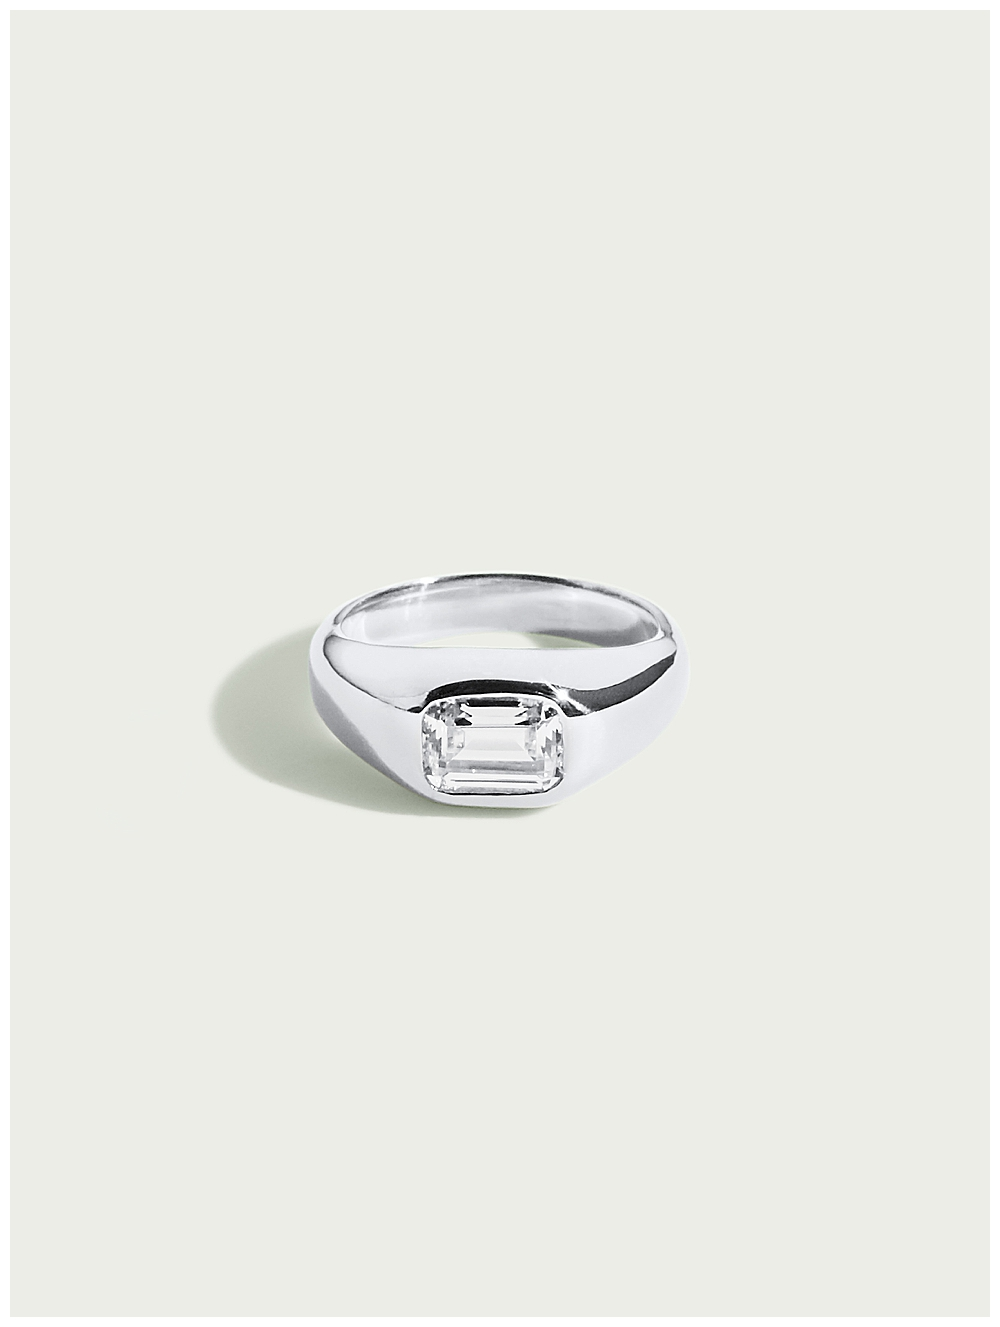 unisex-engagement-rings-12